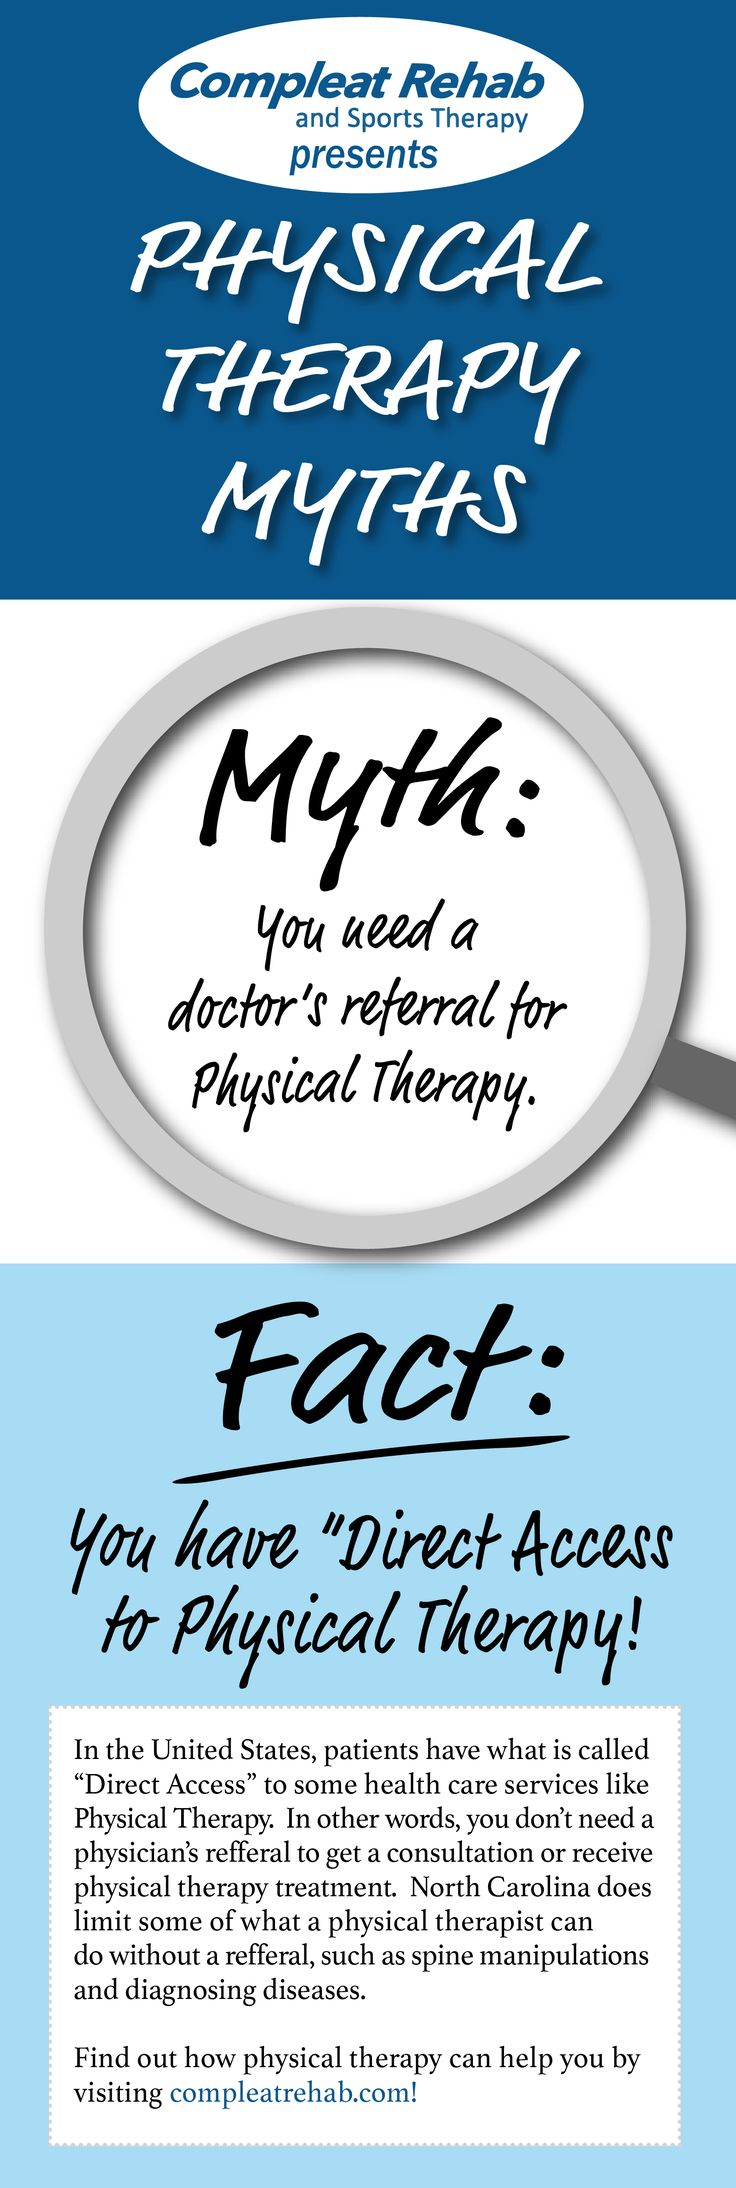 About physical therapy - Find This Pin And More On About Physical Therapy By Compleatrehab